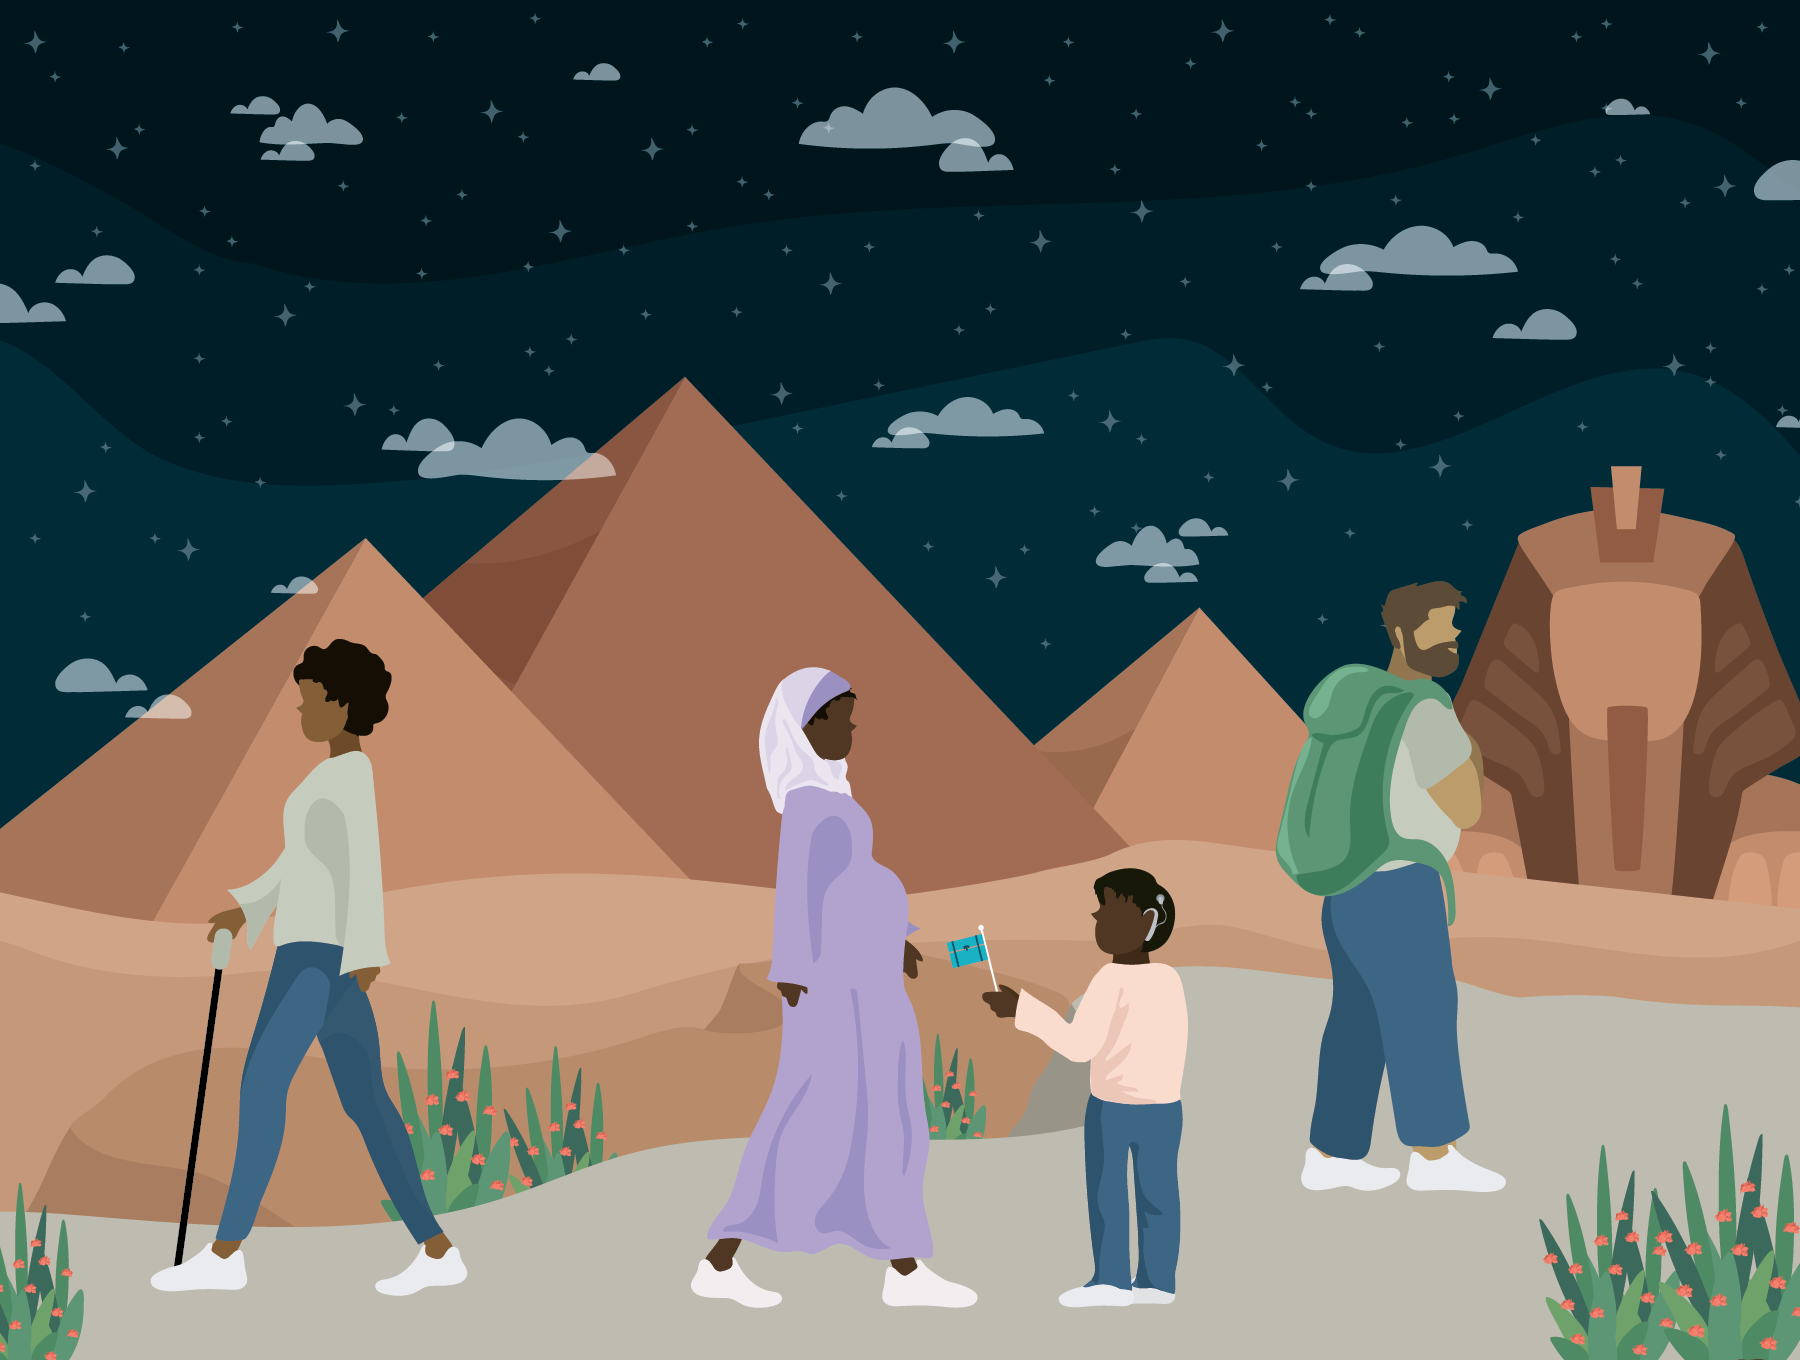 Four people with different disabilities in the foreground, night sky, Giza pyramids, and Sphinx in the background. Illustration.